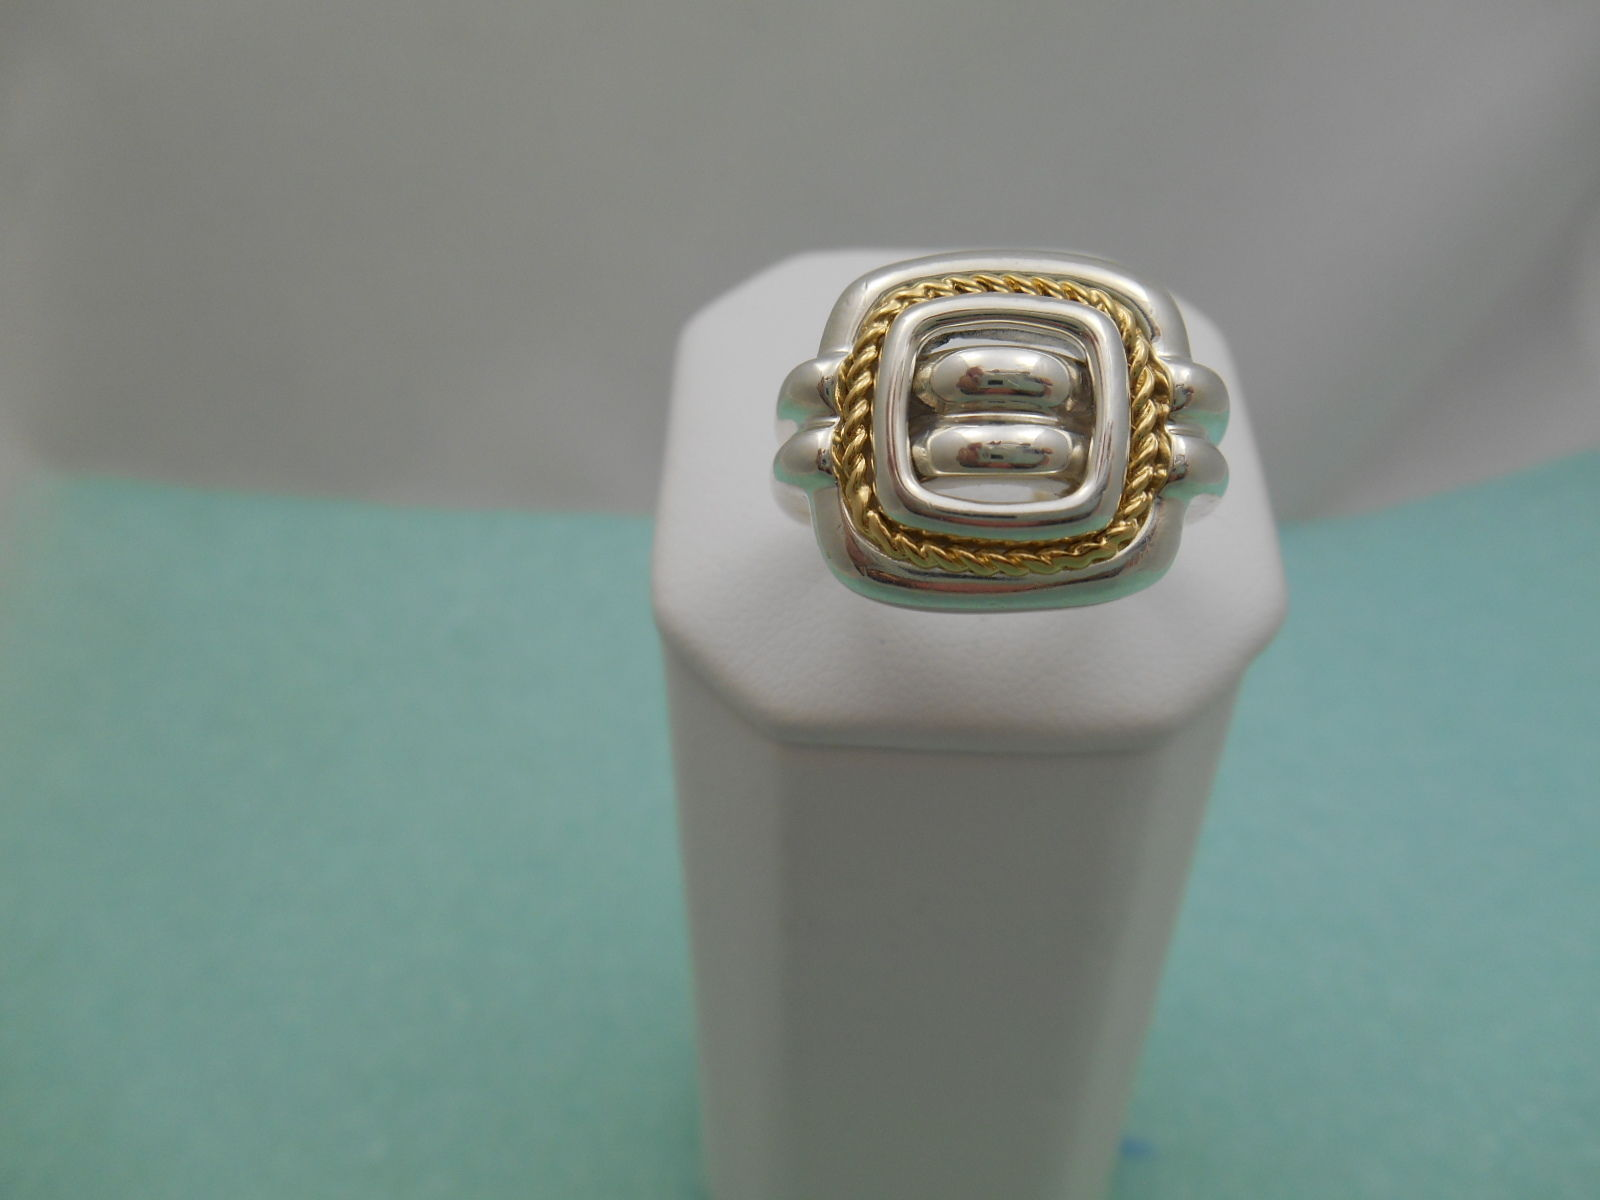 Tiffany & Co 18K Gold Silver Square Braid Rope Band Ring Sz 5.75 Pouch & Box